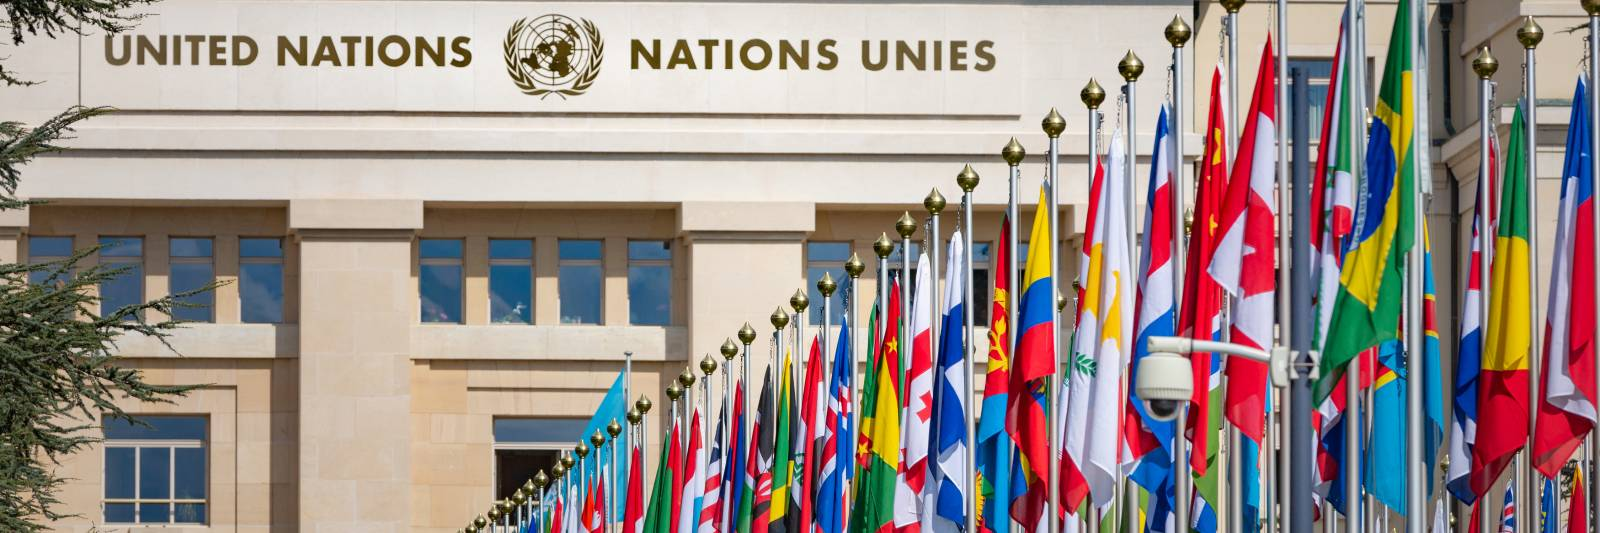 United Nations Reveals Potential Data Breach